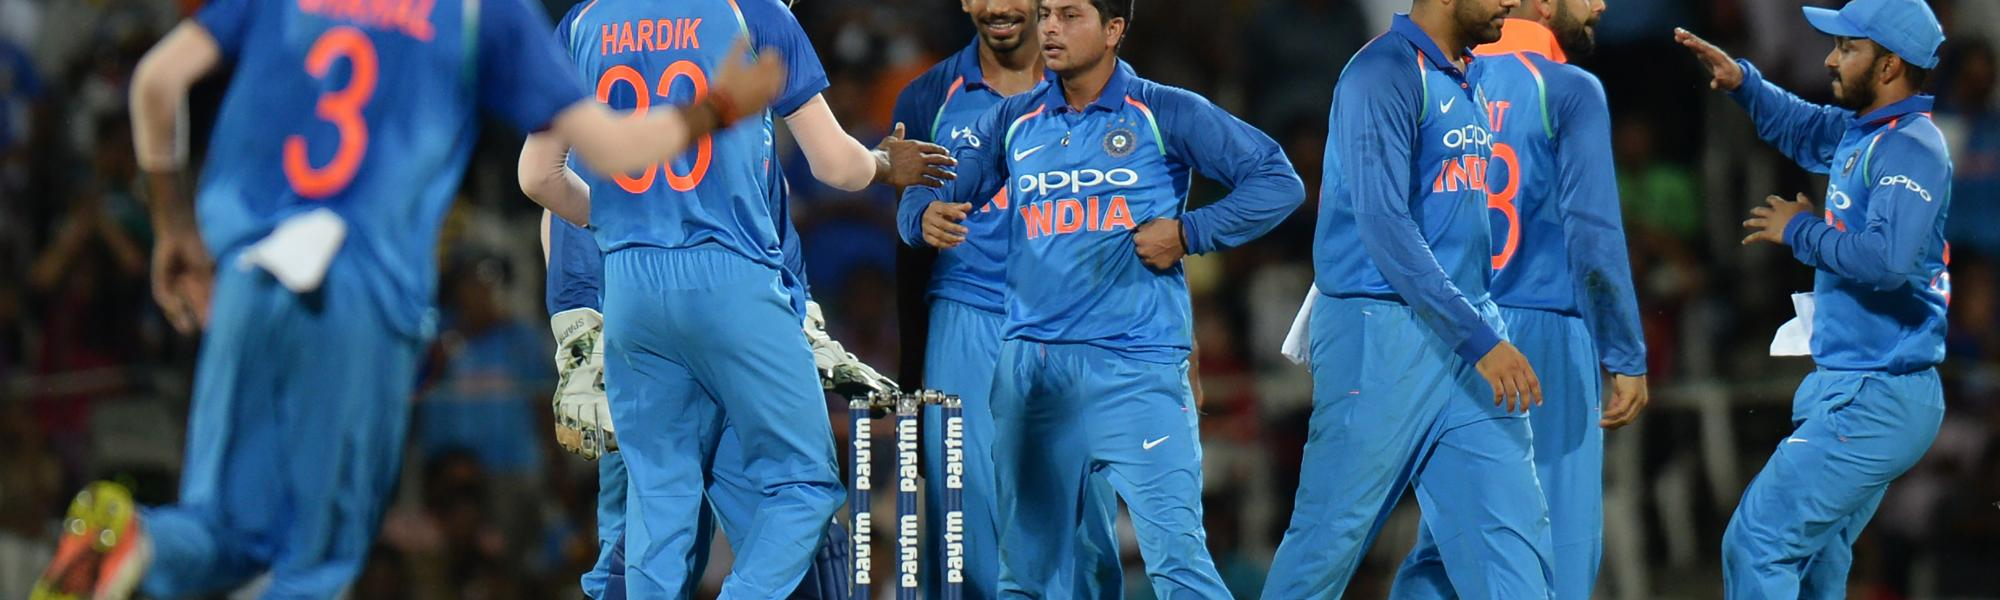 Kuldeep Yadav struck twice and finished with 2 for 33 to dent Australia's innings.